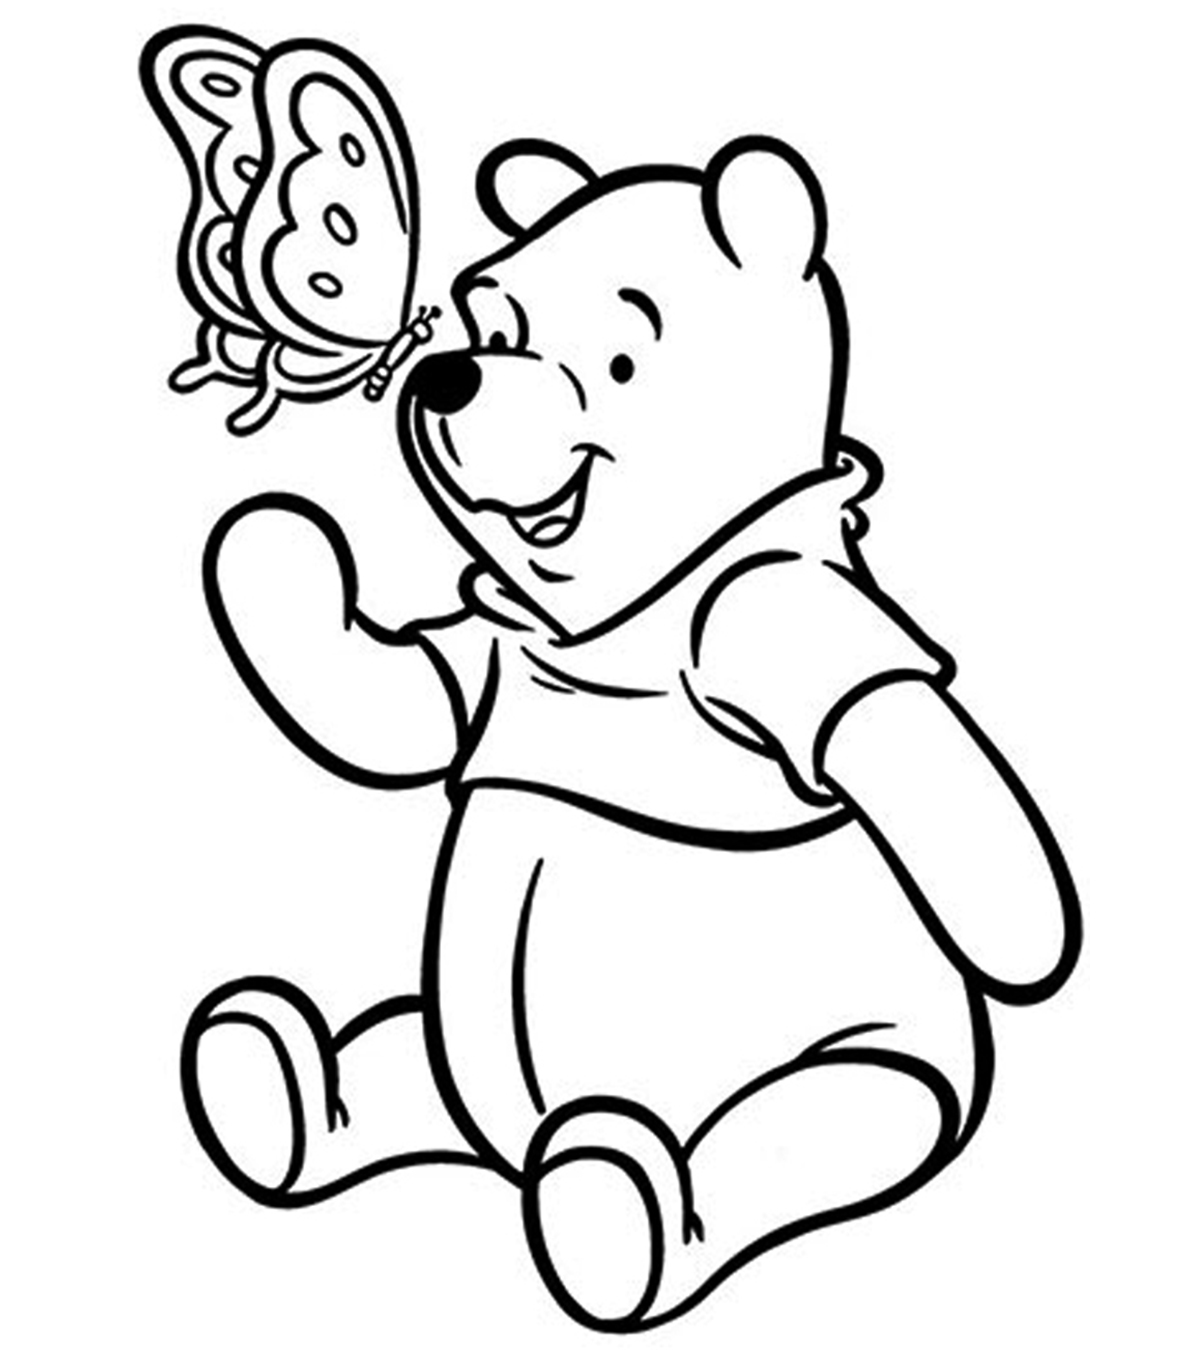 1200x1350 Top Free Printable Pooh Bear Coloring Pages Online